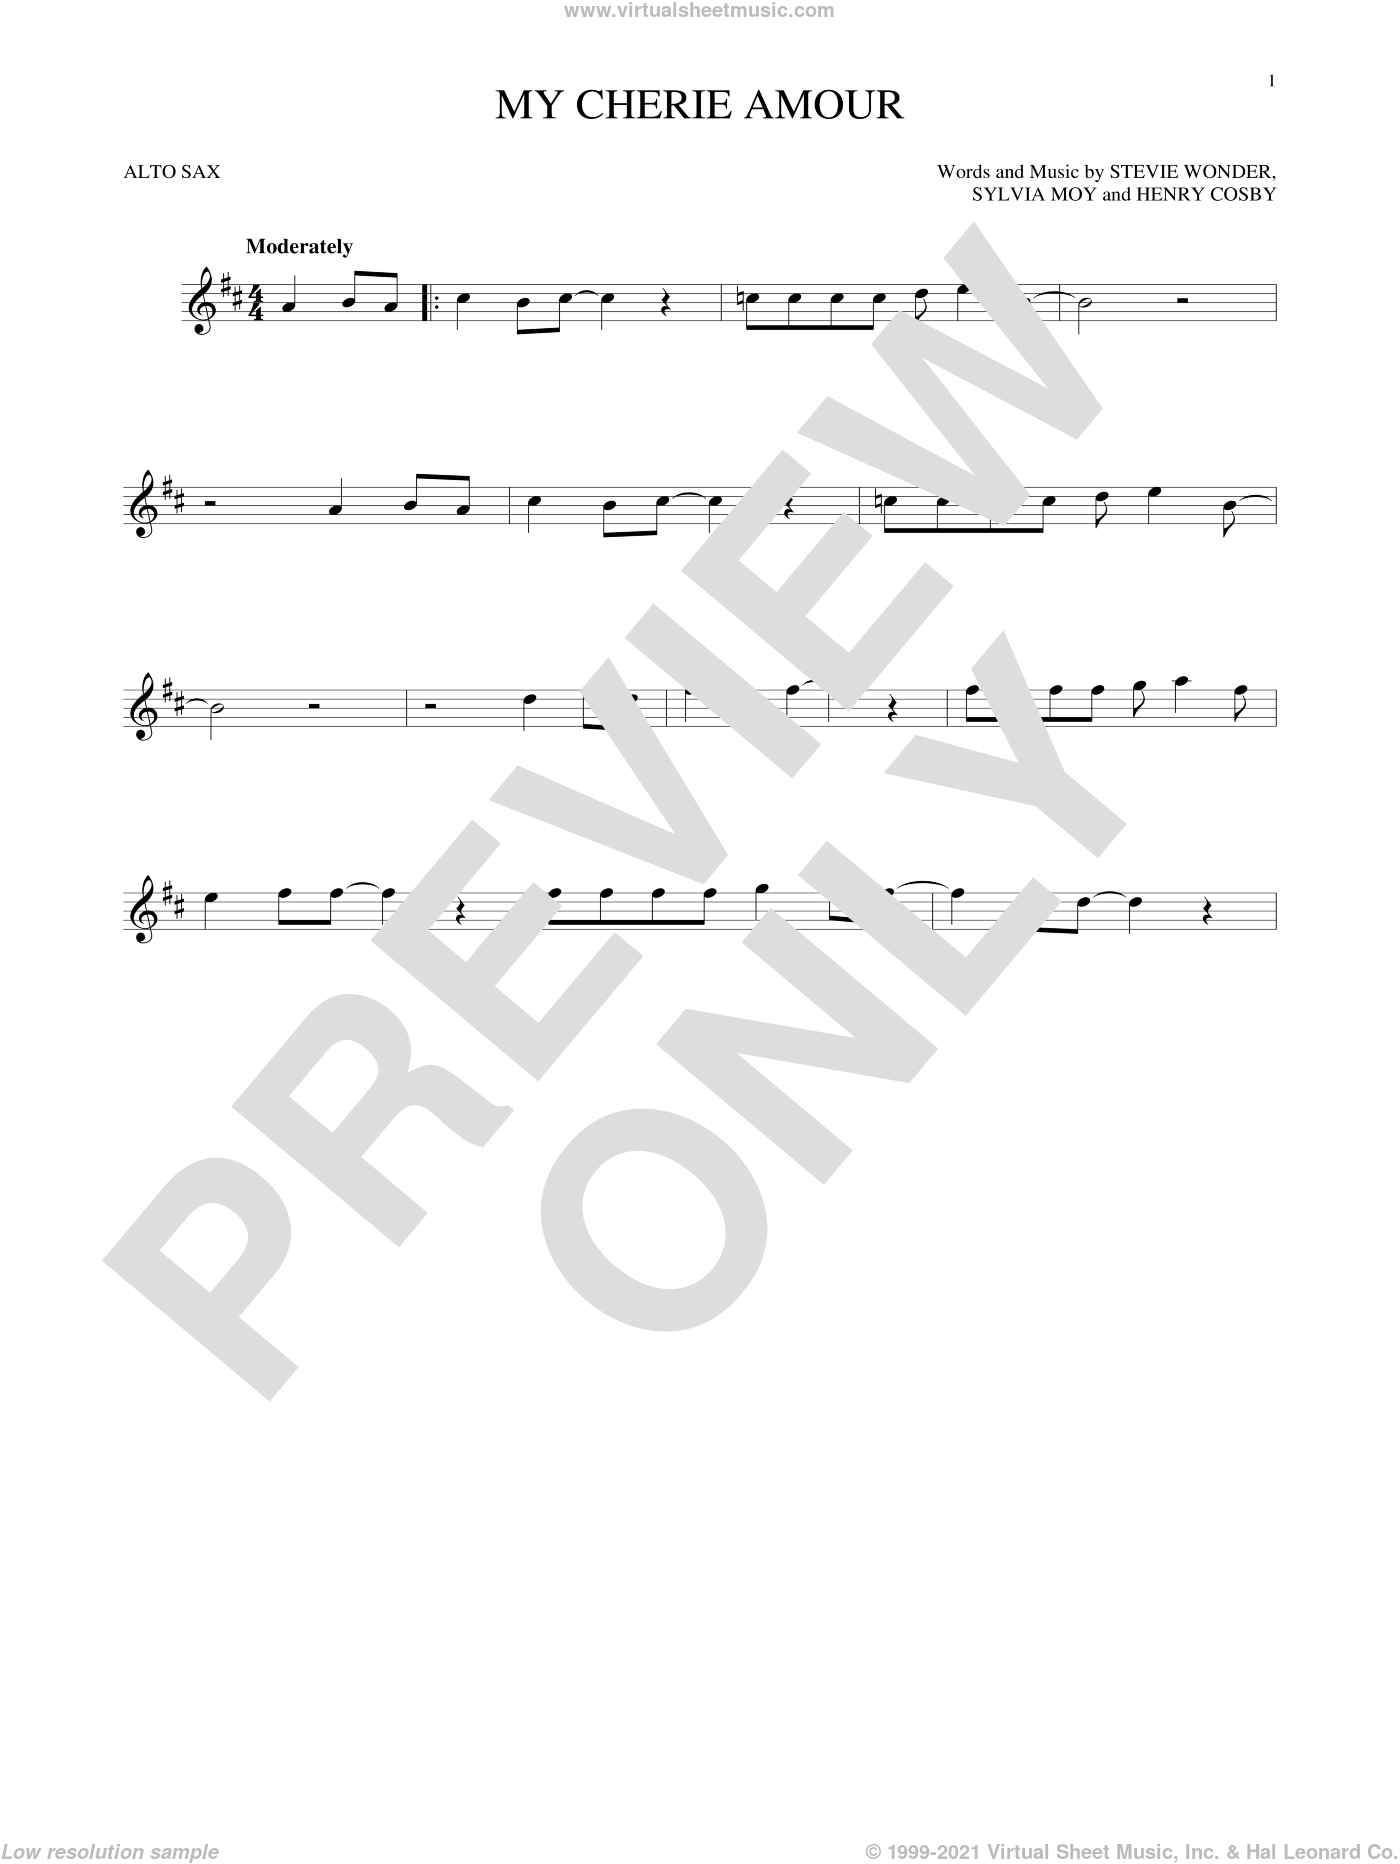 My Cherie Amour sheet music for alto saxophone solo by Stevie Wonder, Henry Cosby and Sylvia Moy, intermediate skill level